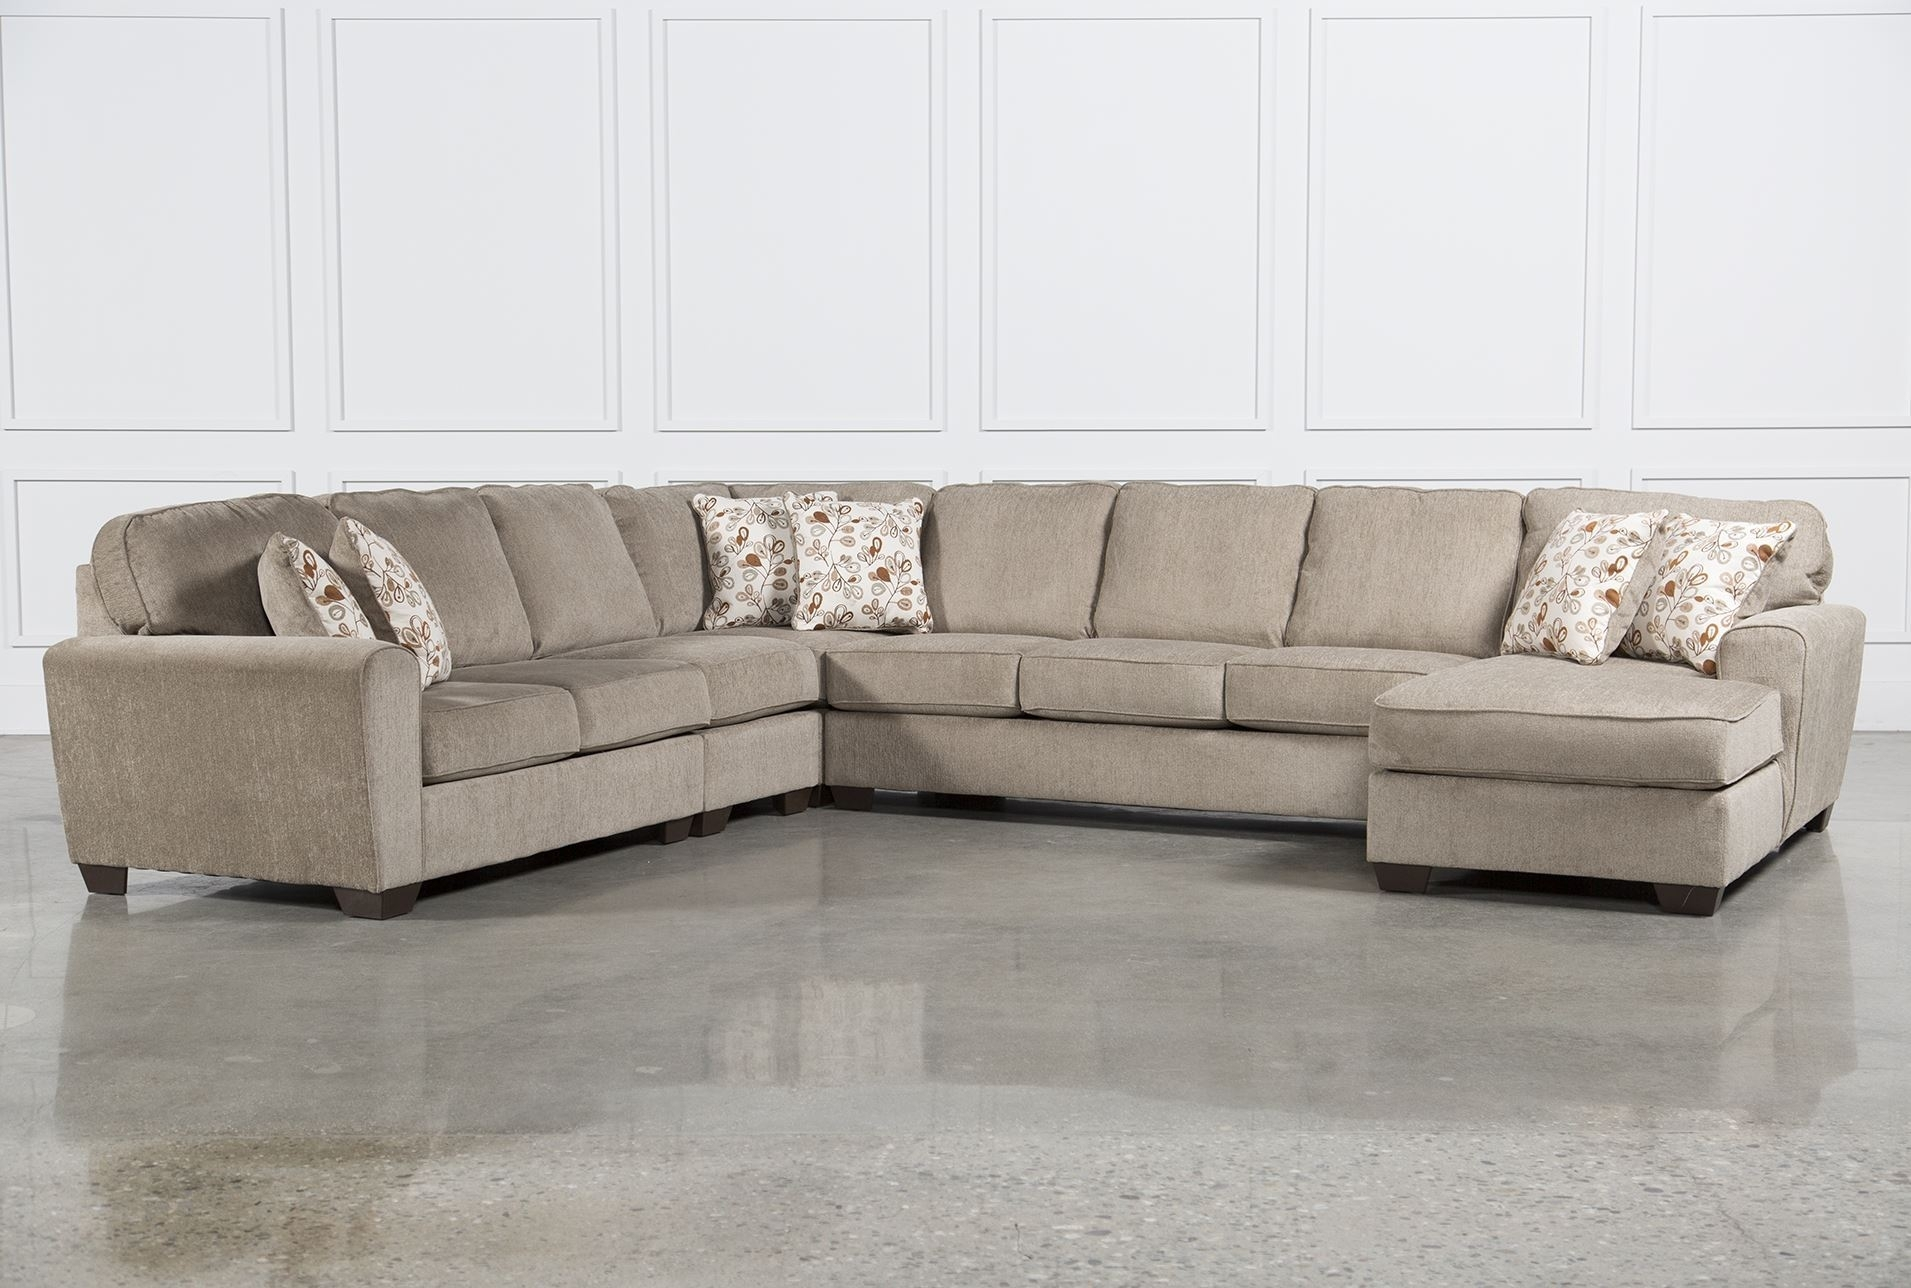 Best Ideas Of Raf Chaise In Patola Park 5 Piece Sectional W Raf In Norfolk Chocolate 3 Piece Sectionals With Raf Chaise (Image 3 of 25)